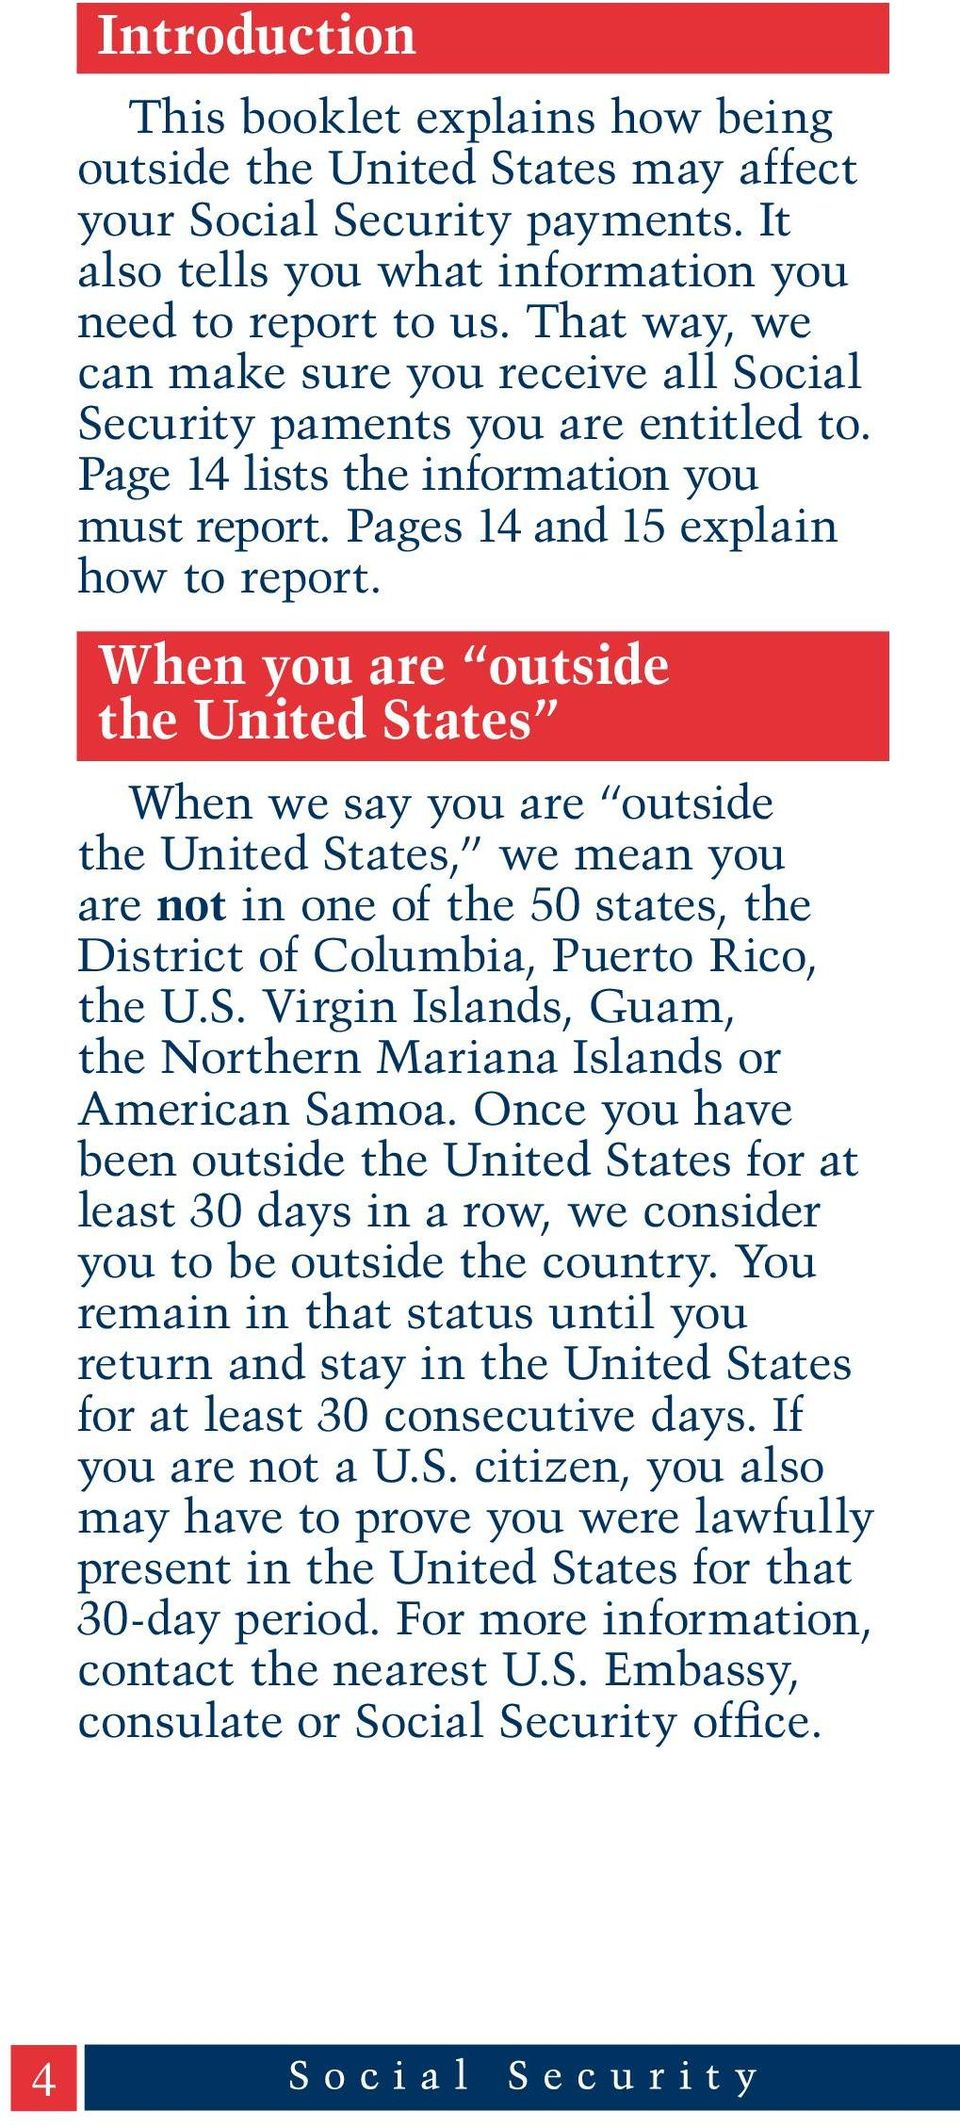 When you are outside the United States When we say you are outside the United States, we mean you are not in one of the 50 states, the District of Columbia, Puerto Rico, the U.S. Virgin Islands, Guam, the Northern Mariana Islands or American Samoa.